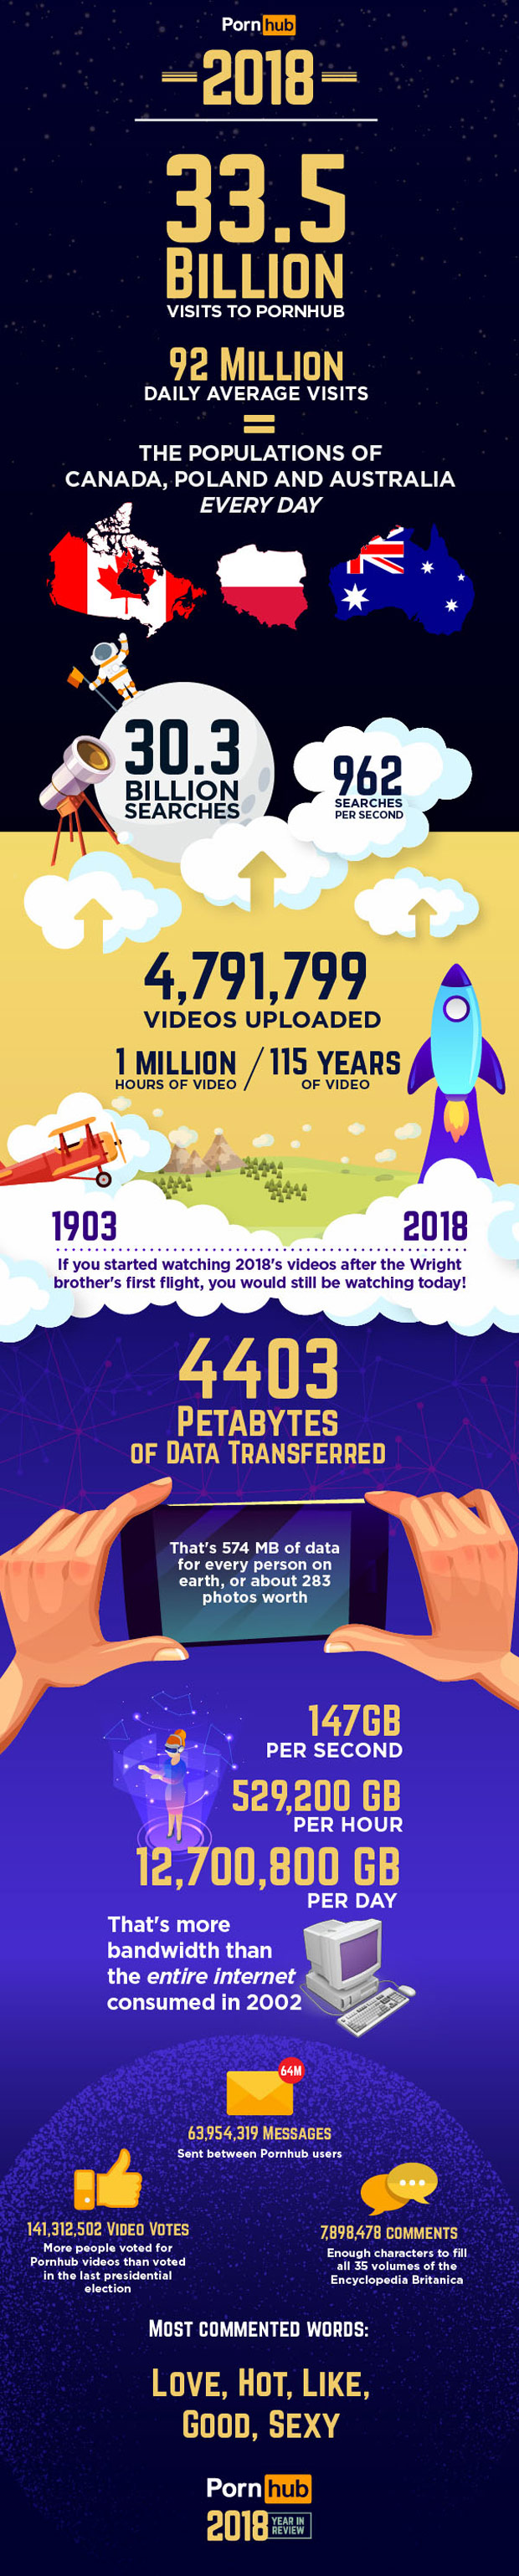 pornhub-insights-year-review-2018-big-numbers-infographic.jpg